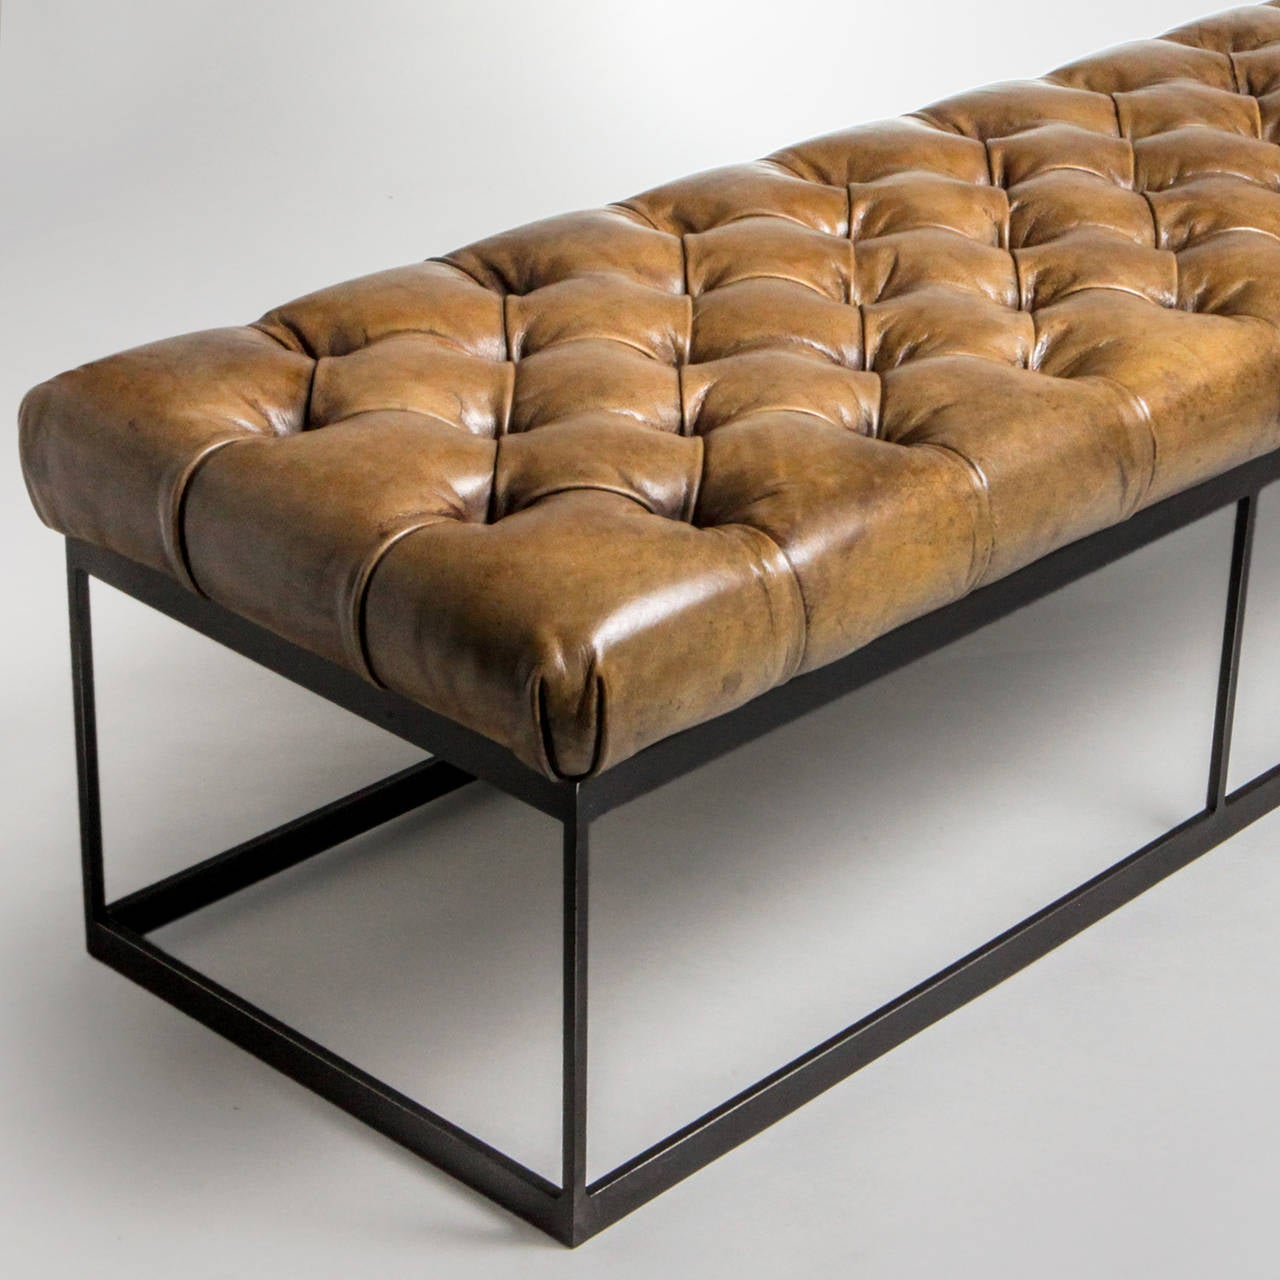 Tufted Leather Bench At 1stdibs